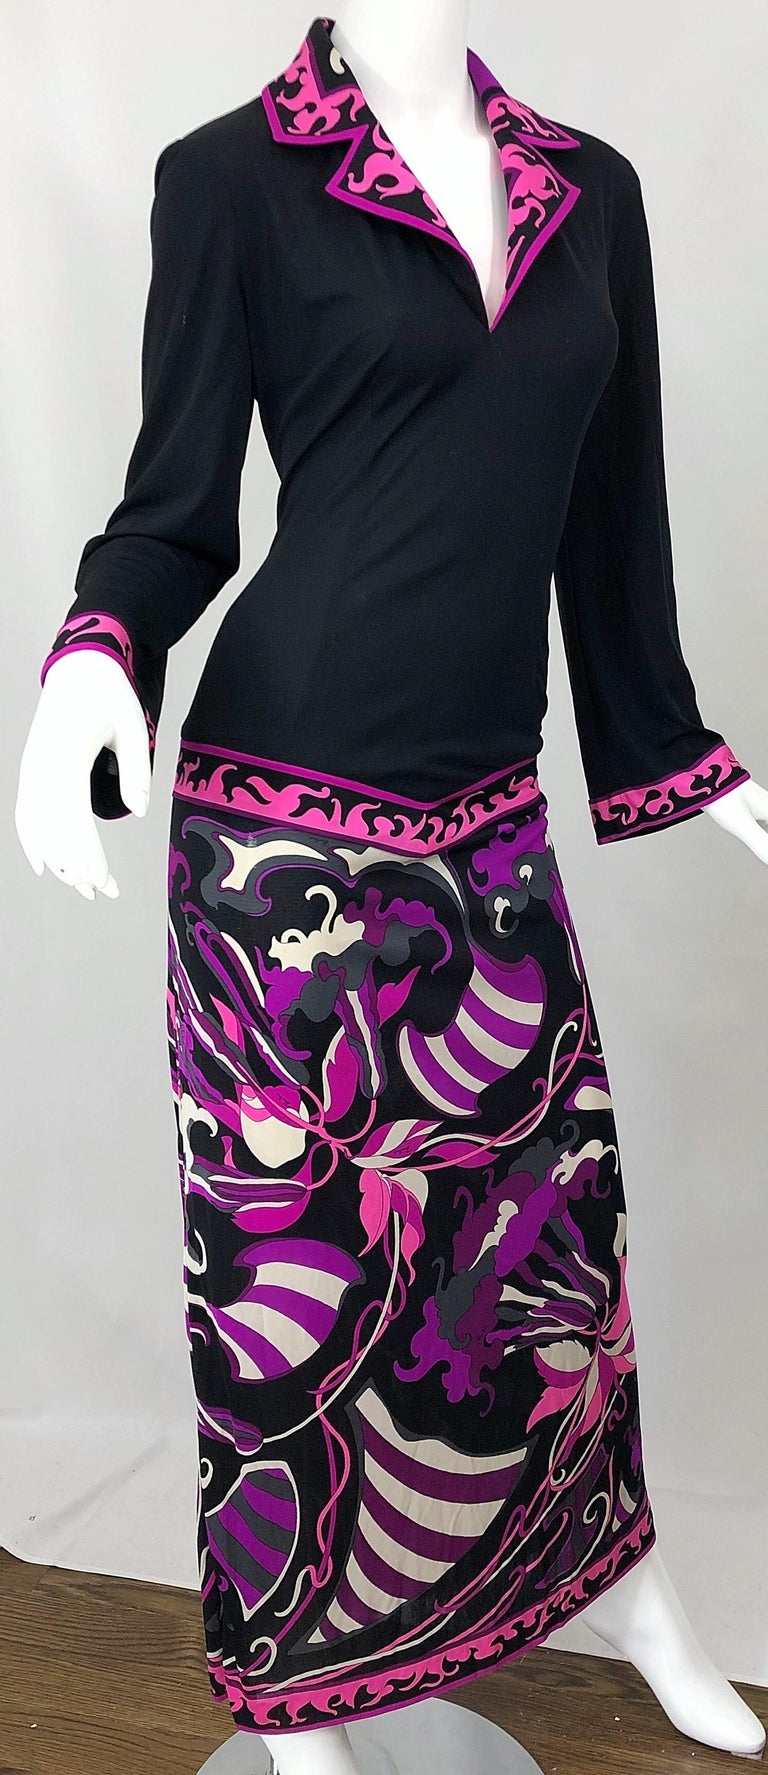 Emilio Pucci 1970s Silk Jersey Pink Purple Black Vintage 70s Maxi Dress For Sale 2